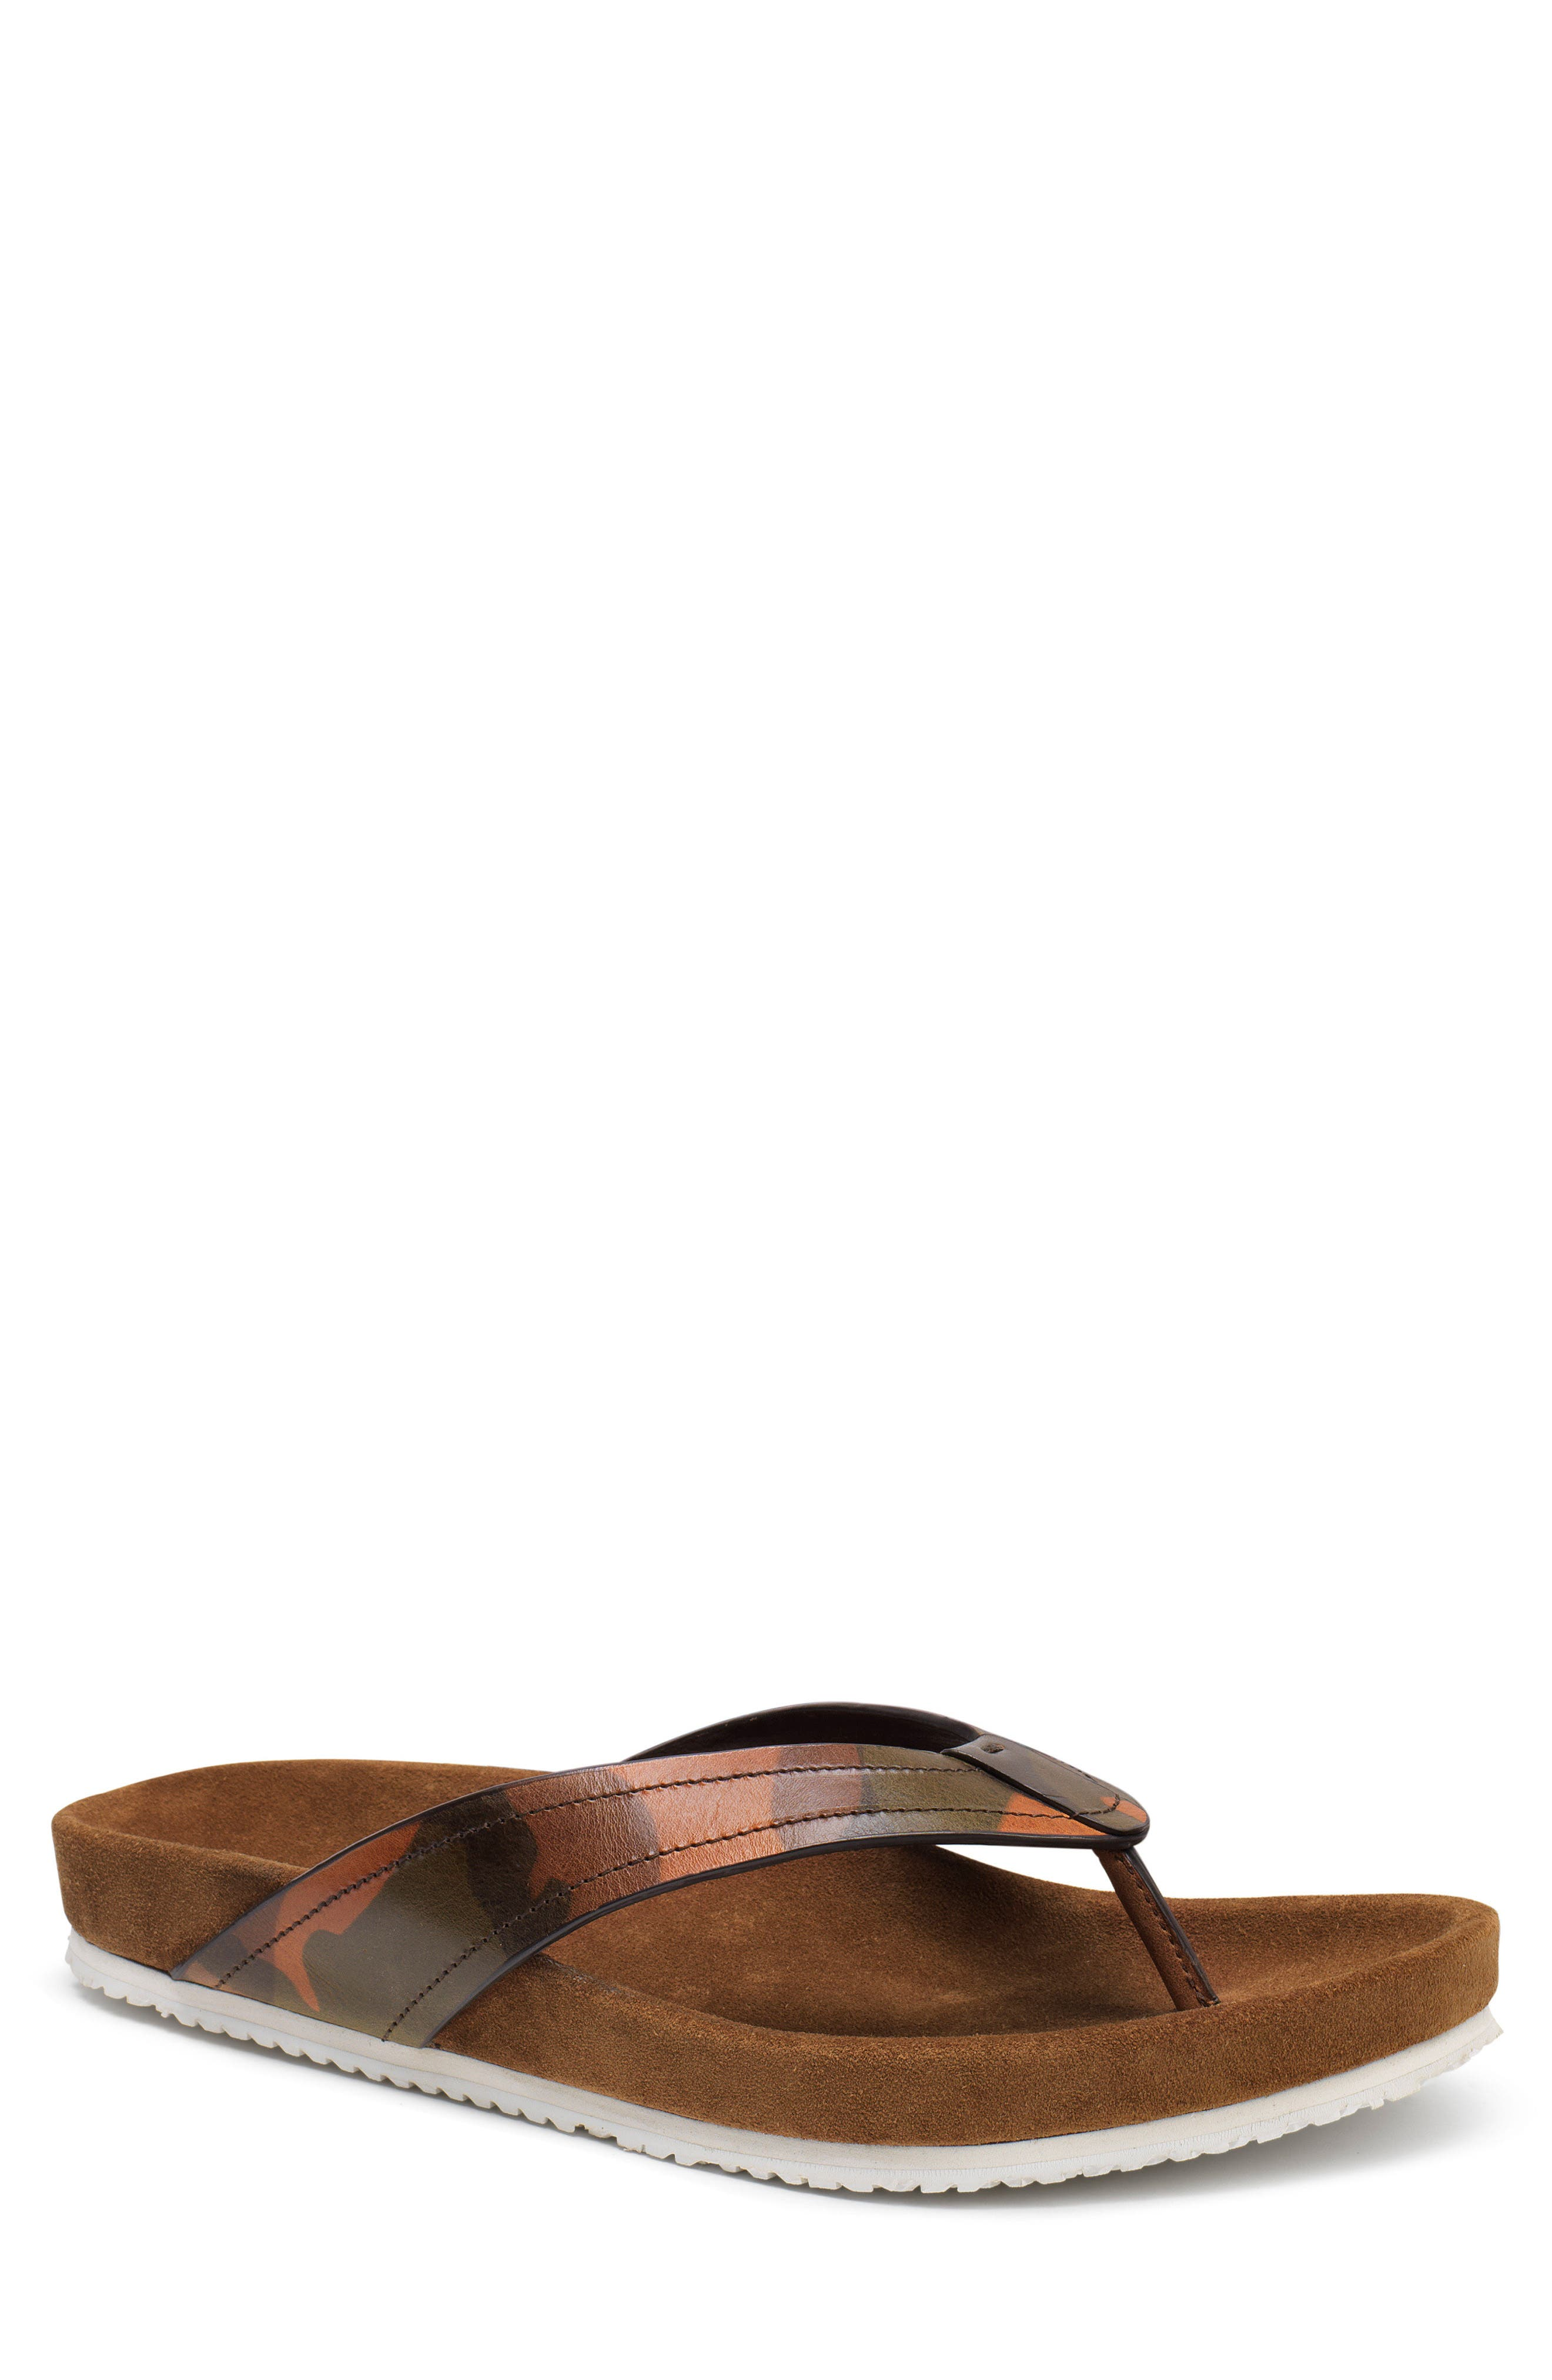 Fleming Flip Flop,                             Main thumbnail 1, color,                             CAMOFLAGE LEATHER